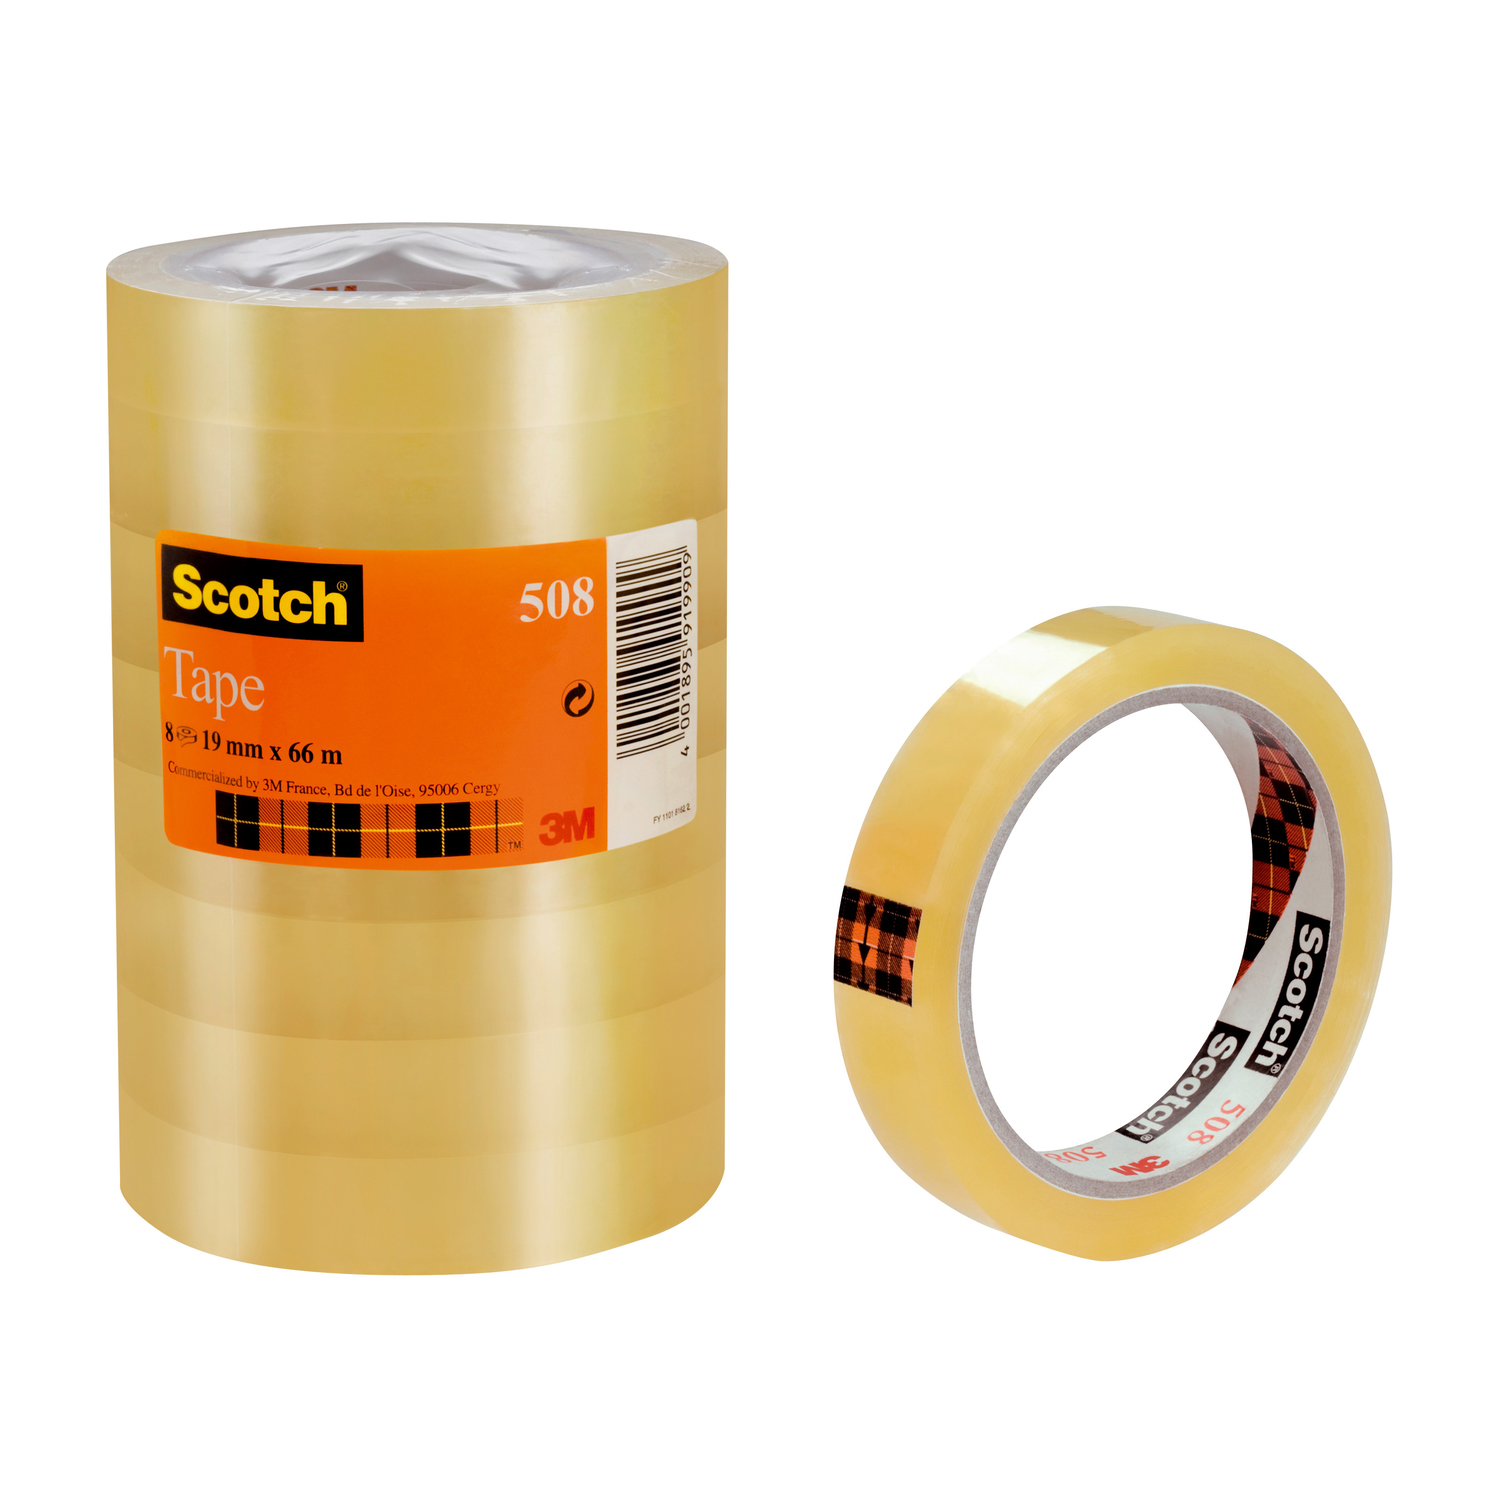 Scotch 508 Clear Tape 19mmx66m Clear Ref 7000080794 [Pack 8]